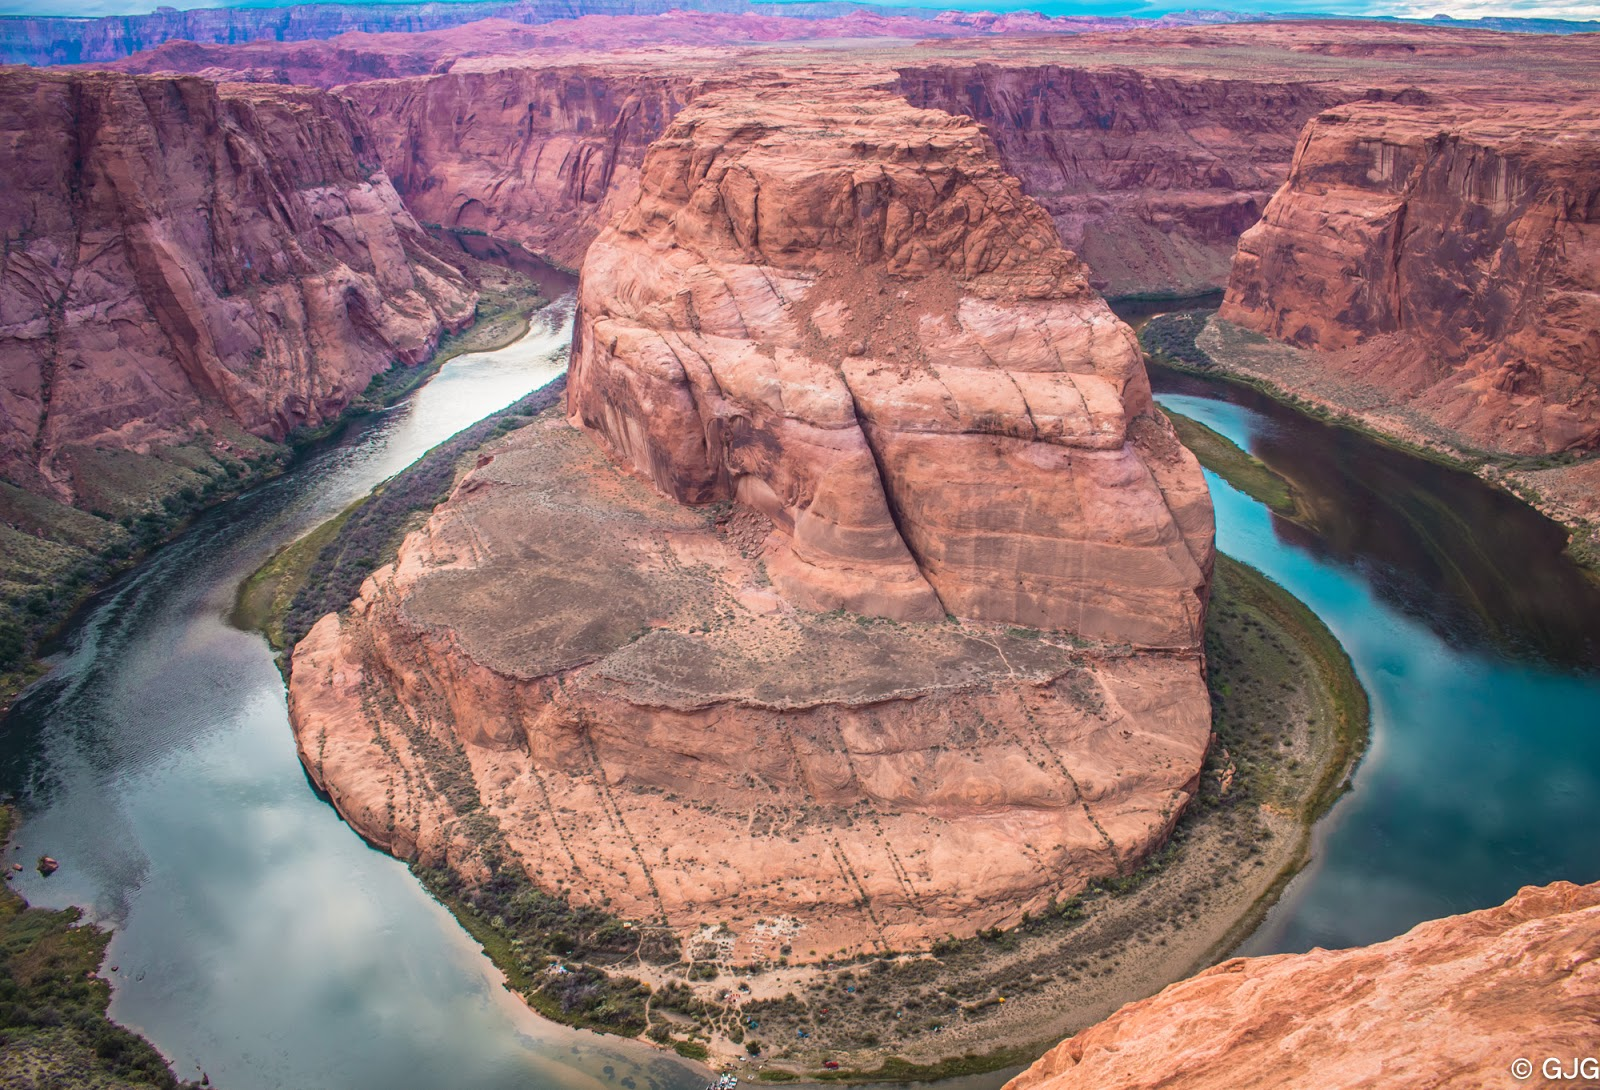 The Horseshoe Bend: Things To Do in Arizona, USA